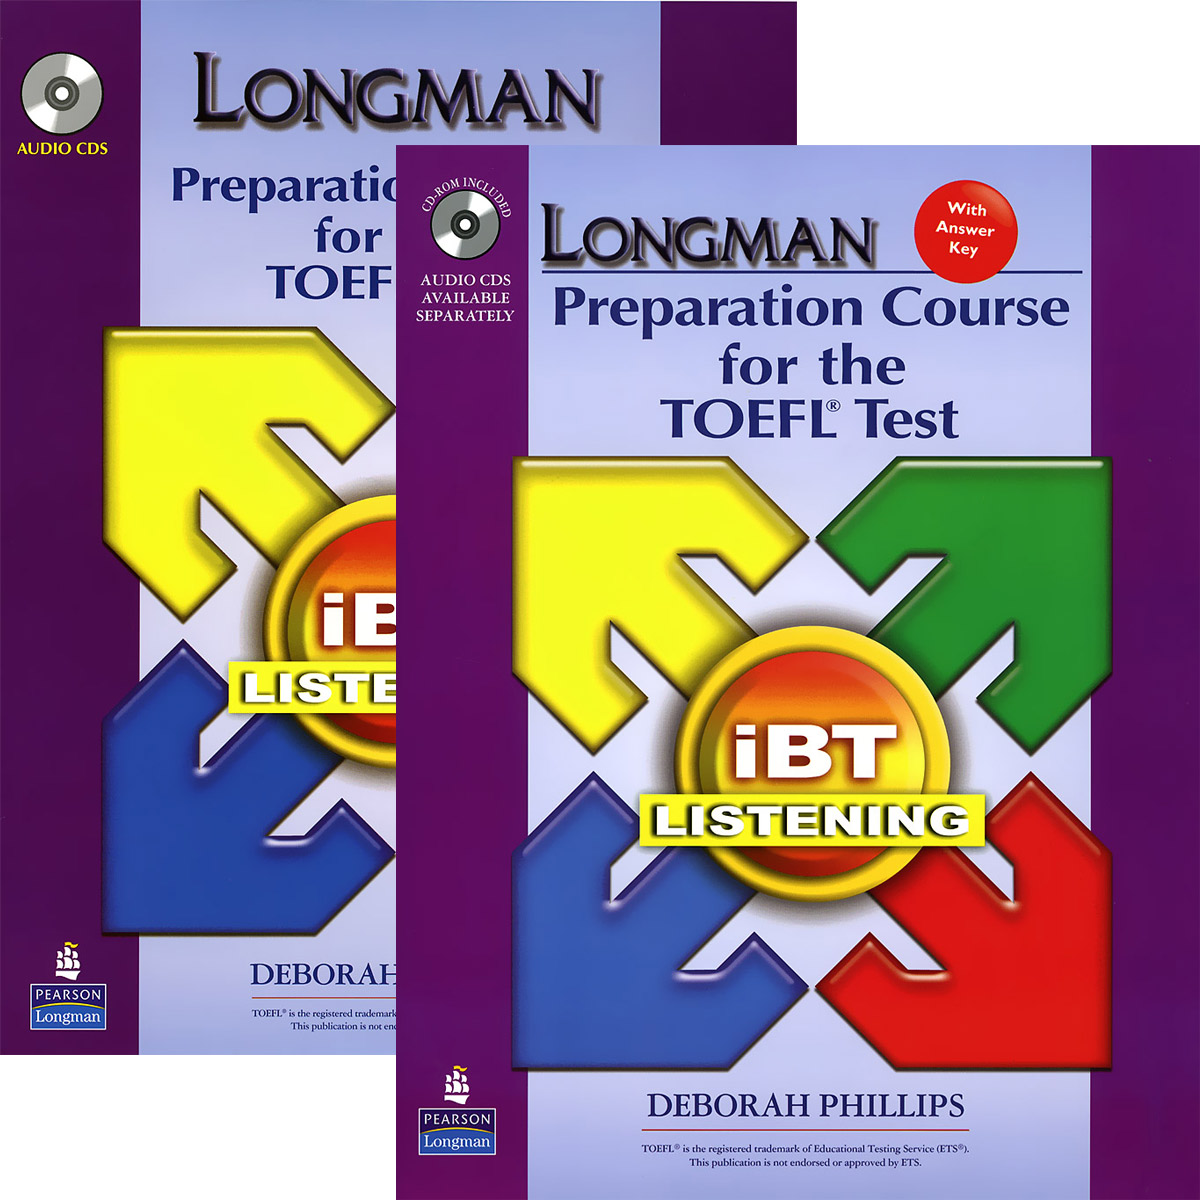 Longman Preparation Course for the TOEFL Test: iBT Listening (аудиокурс на 6 CD) longman introductory course for the toefl test the paper test audio cds